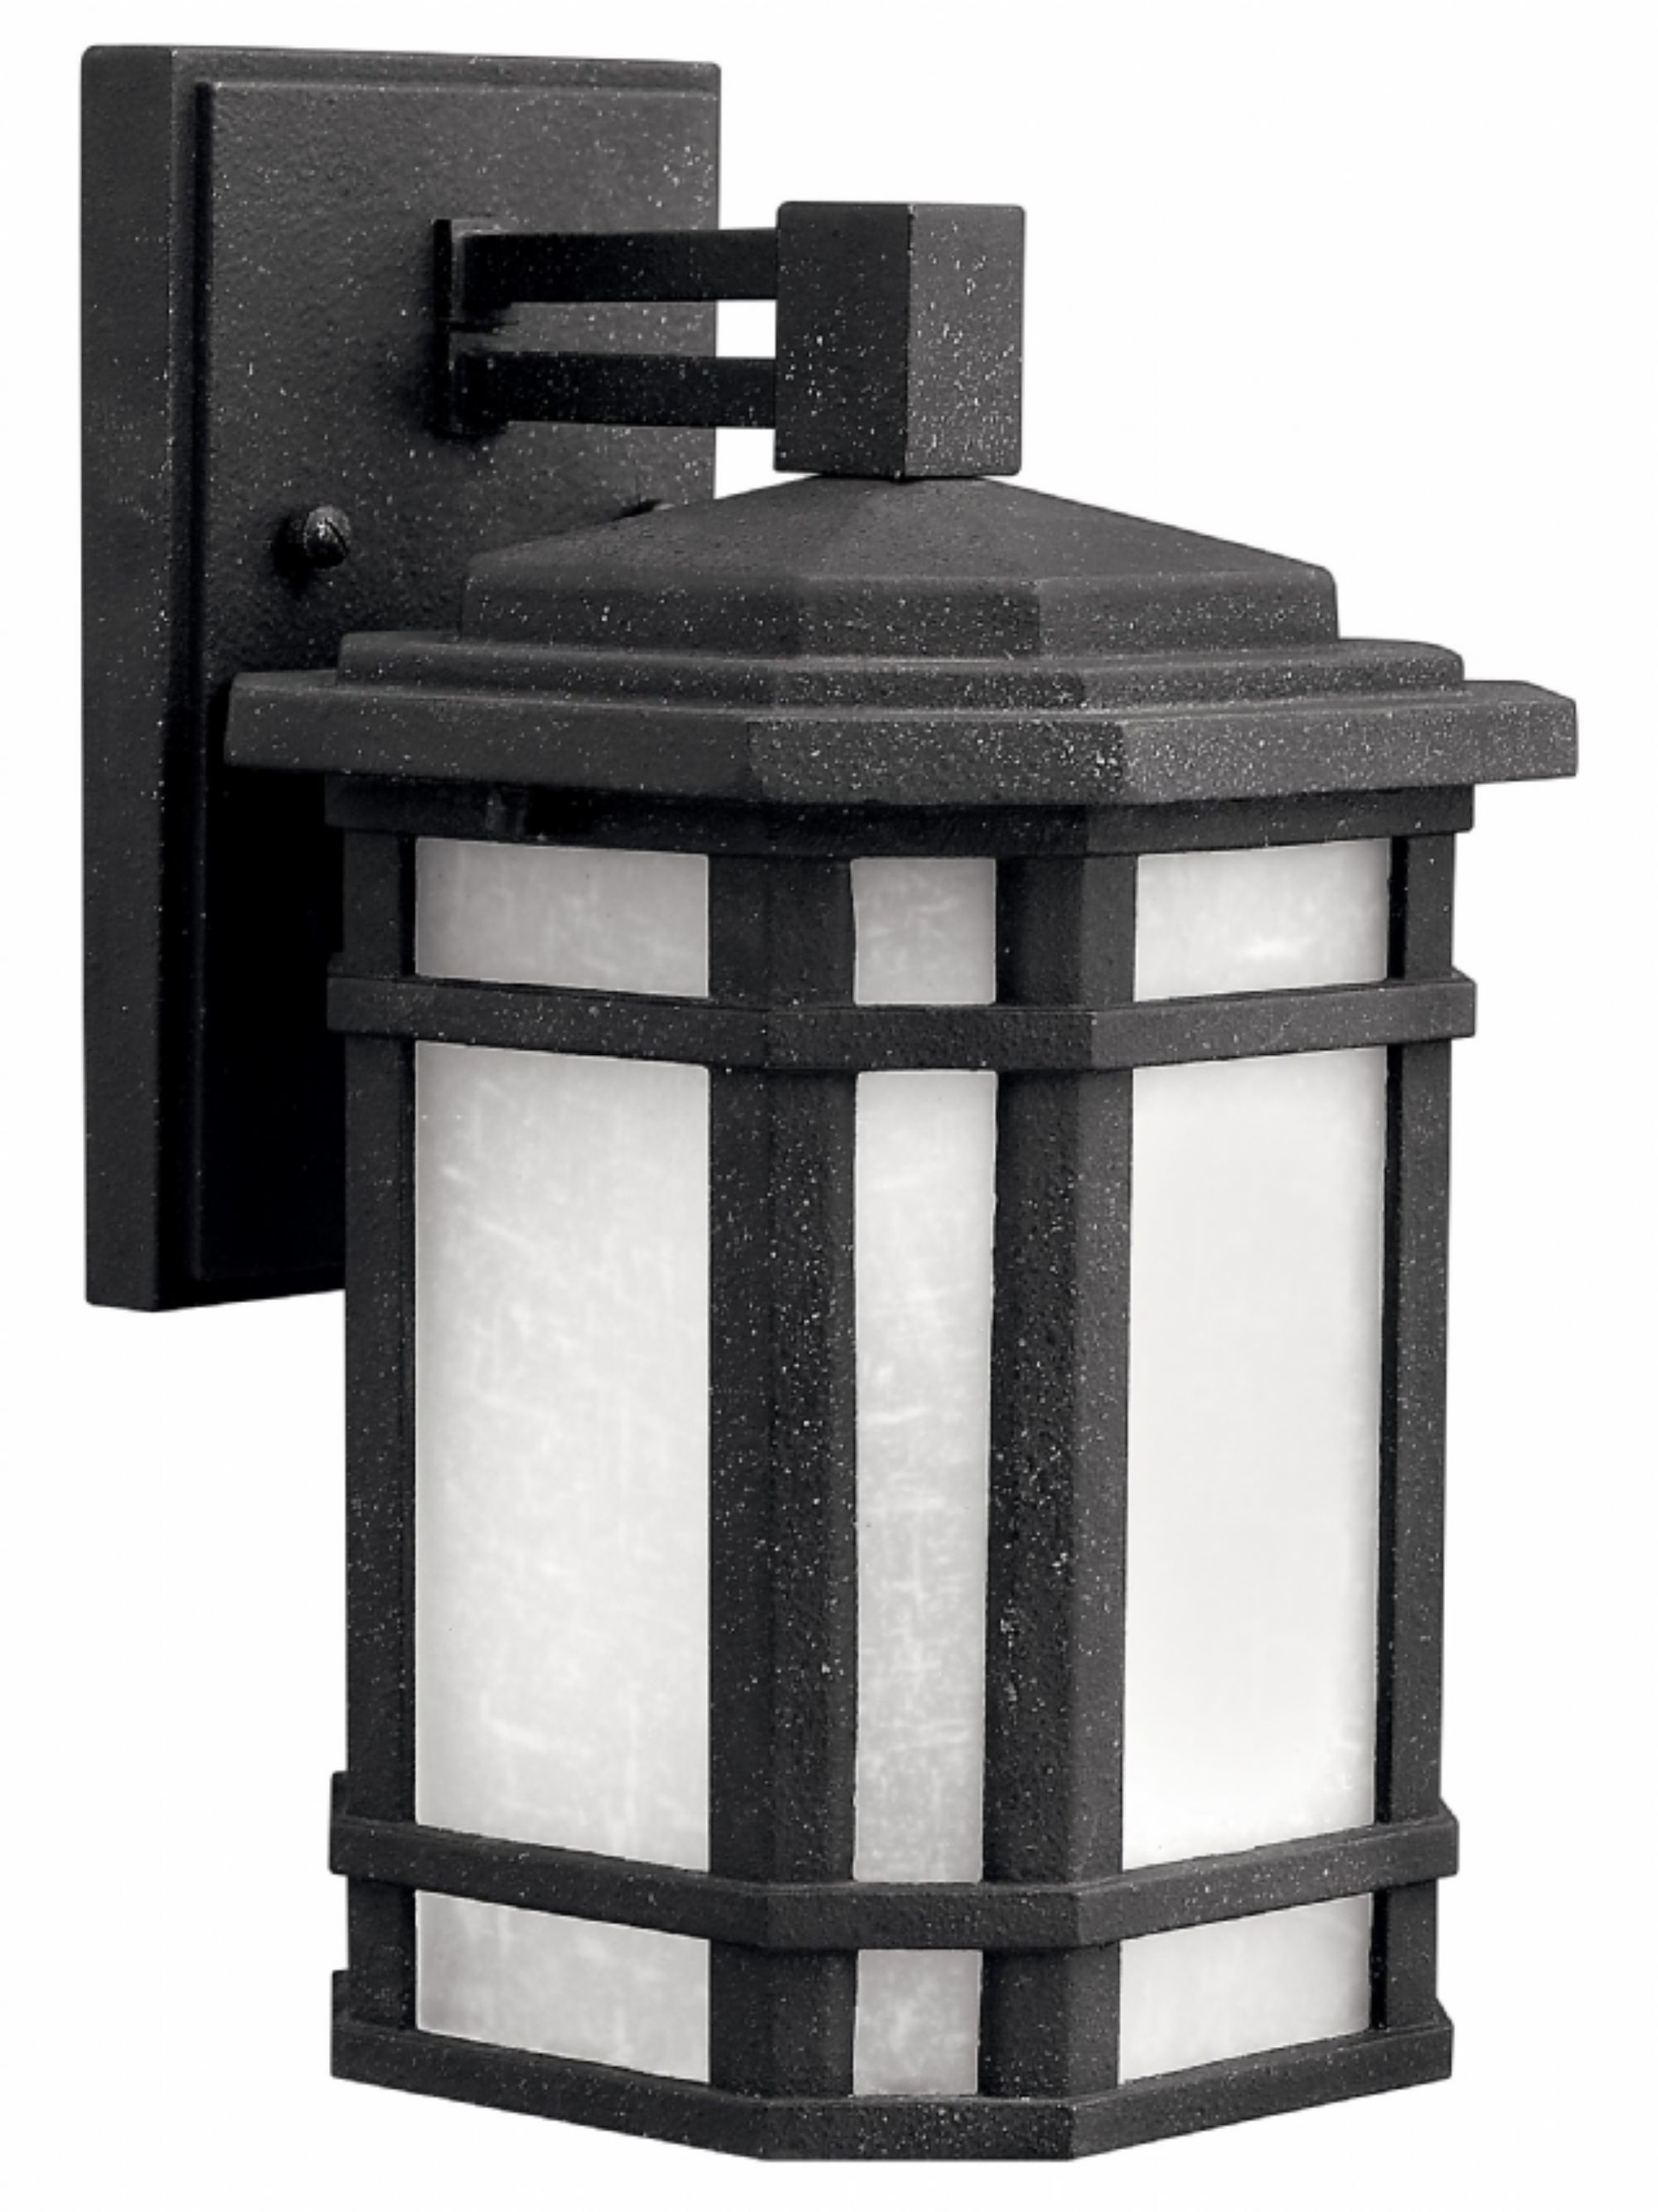 Preferred Vintage Black Cherry Creek > Exterior Wall Mount Inside Japanese Outdoor Wall Lighting (View 17 of 20)